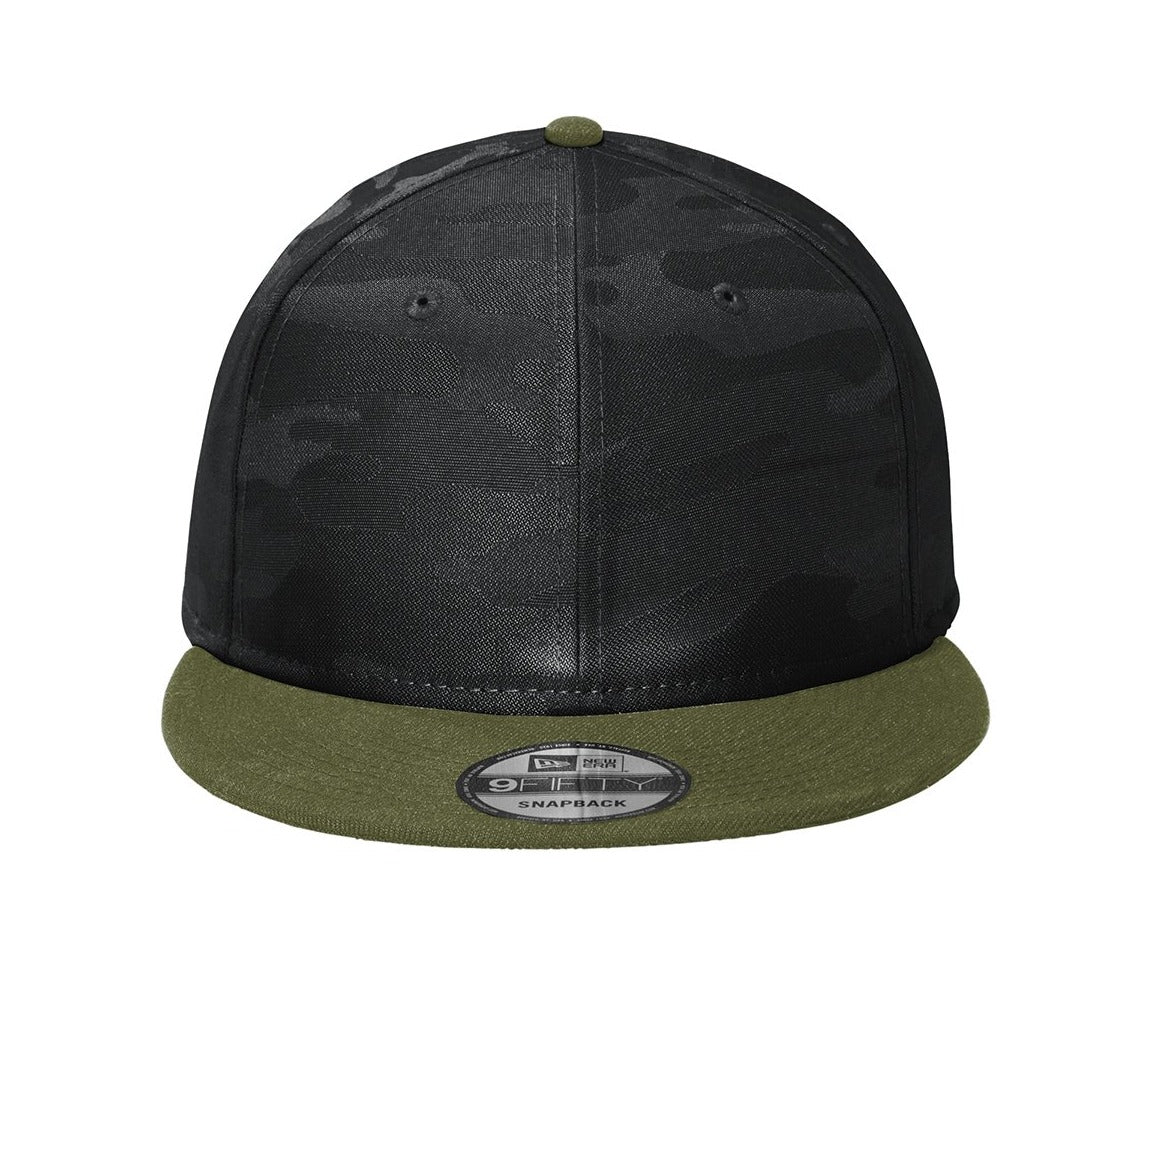 NE407 New Era ® Camo Flat Bill Snapback Cap